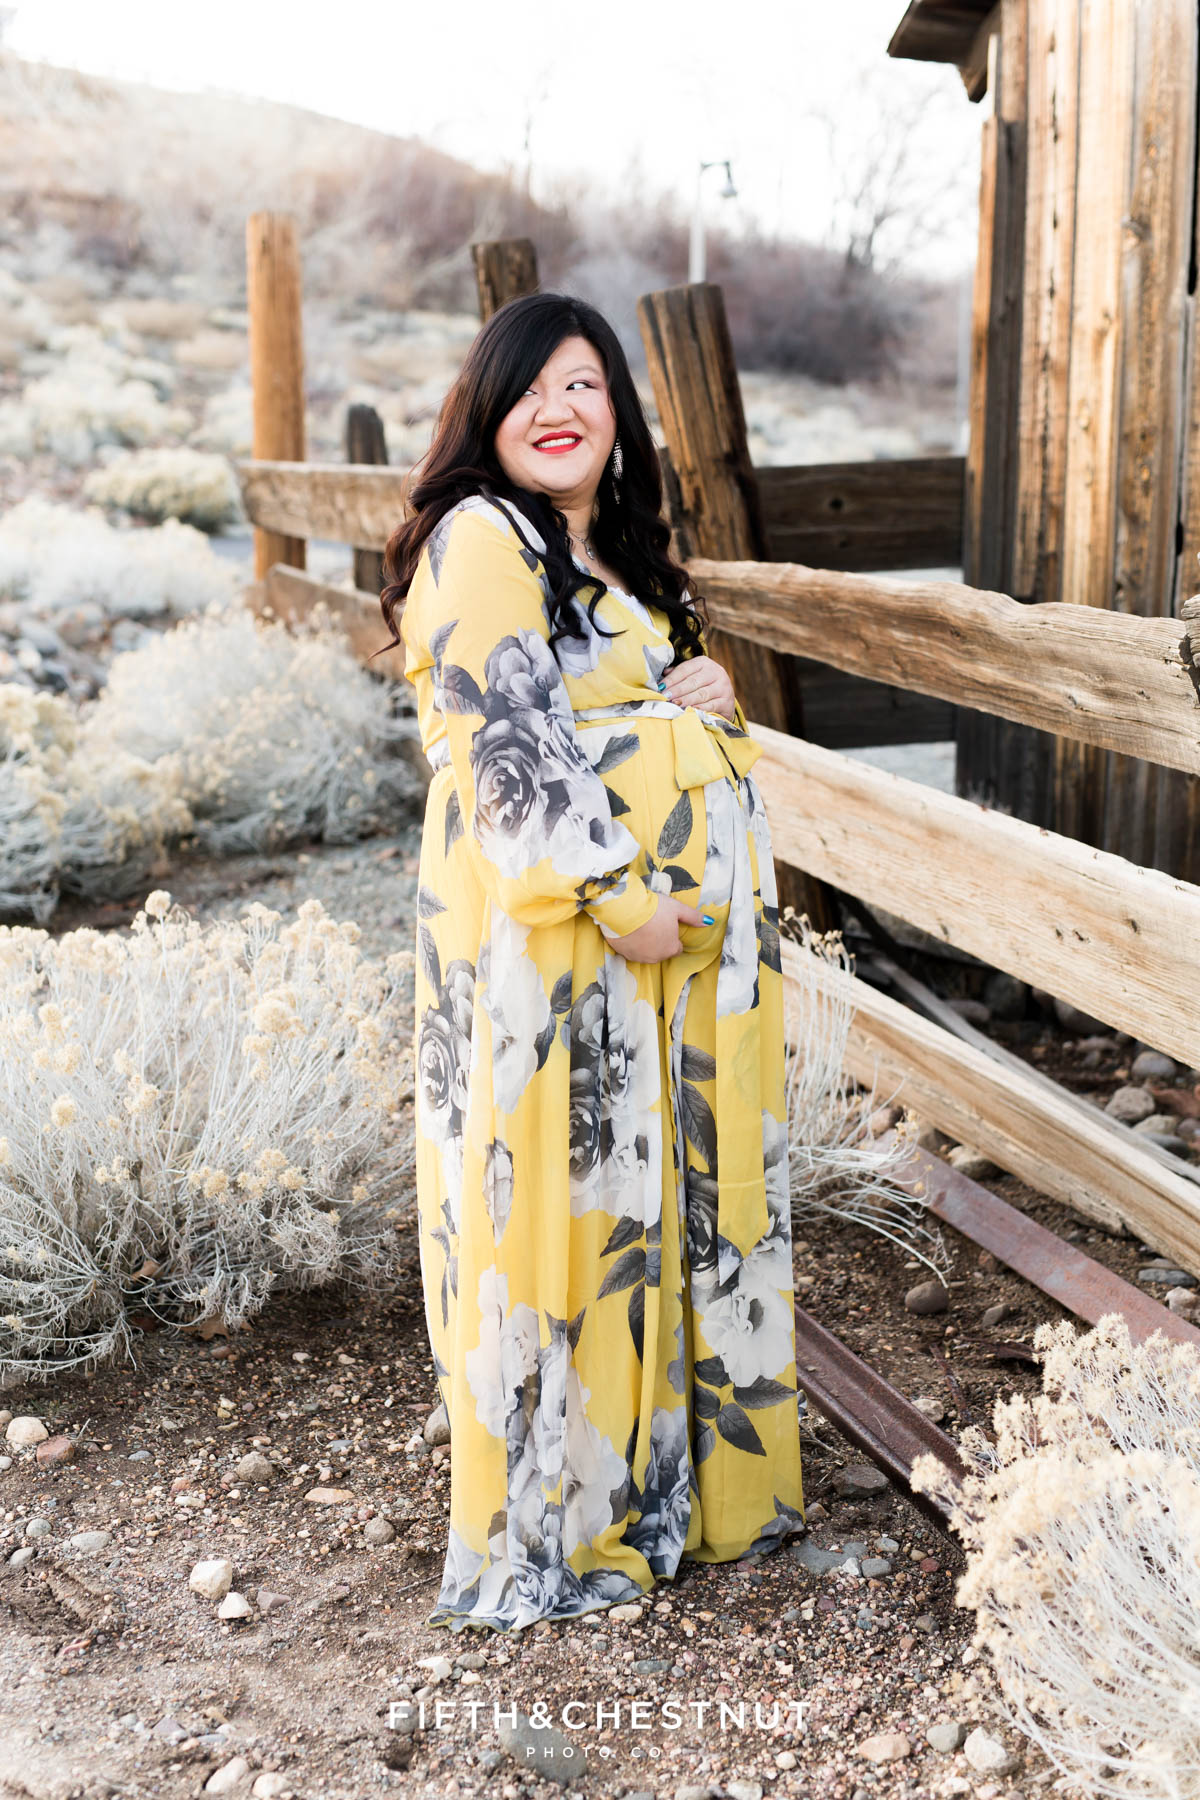 Pregnant woman in yellow and gray floral dress holds pregnant tummy while looking down surrounded by rustic fences and high desert foliage in Reno, NV for maternity portraits by Reno Maternity Photographer